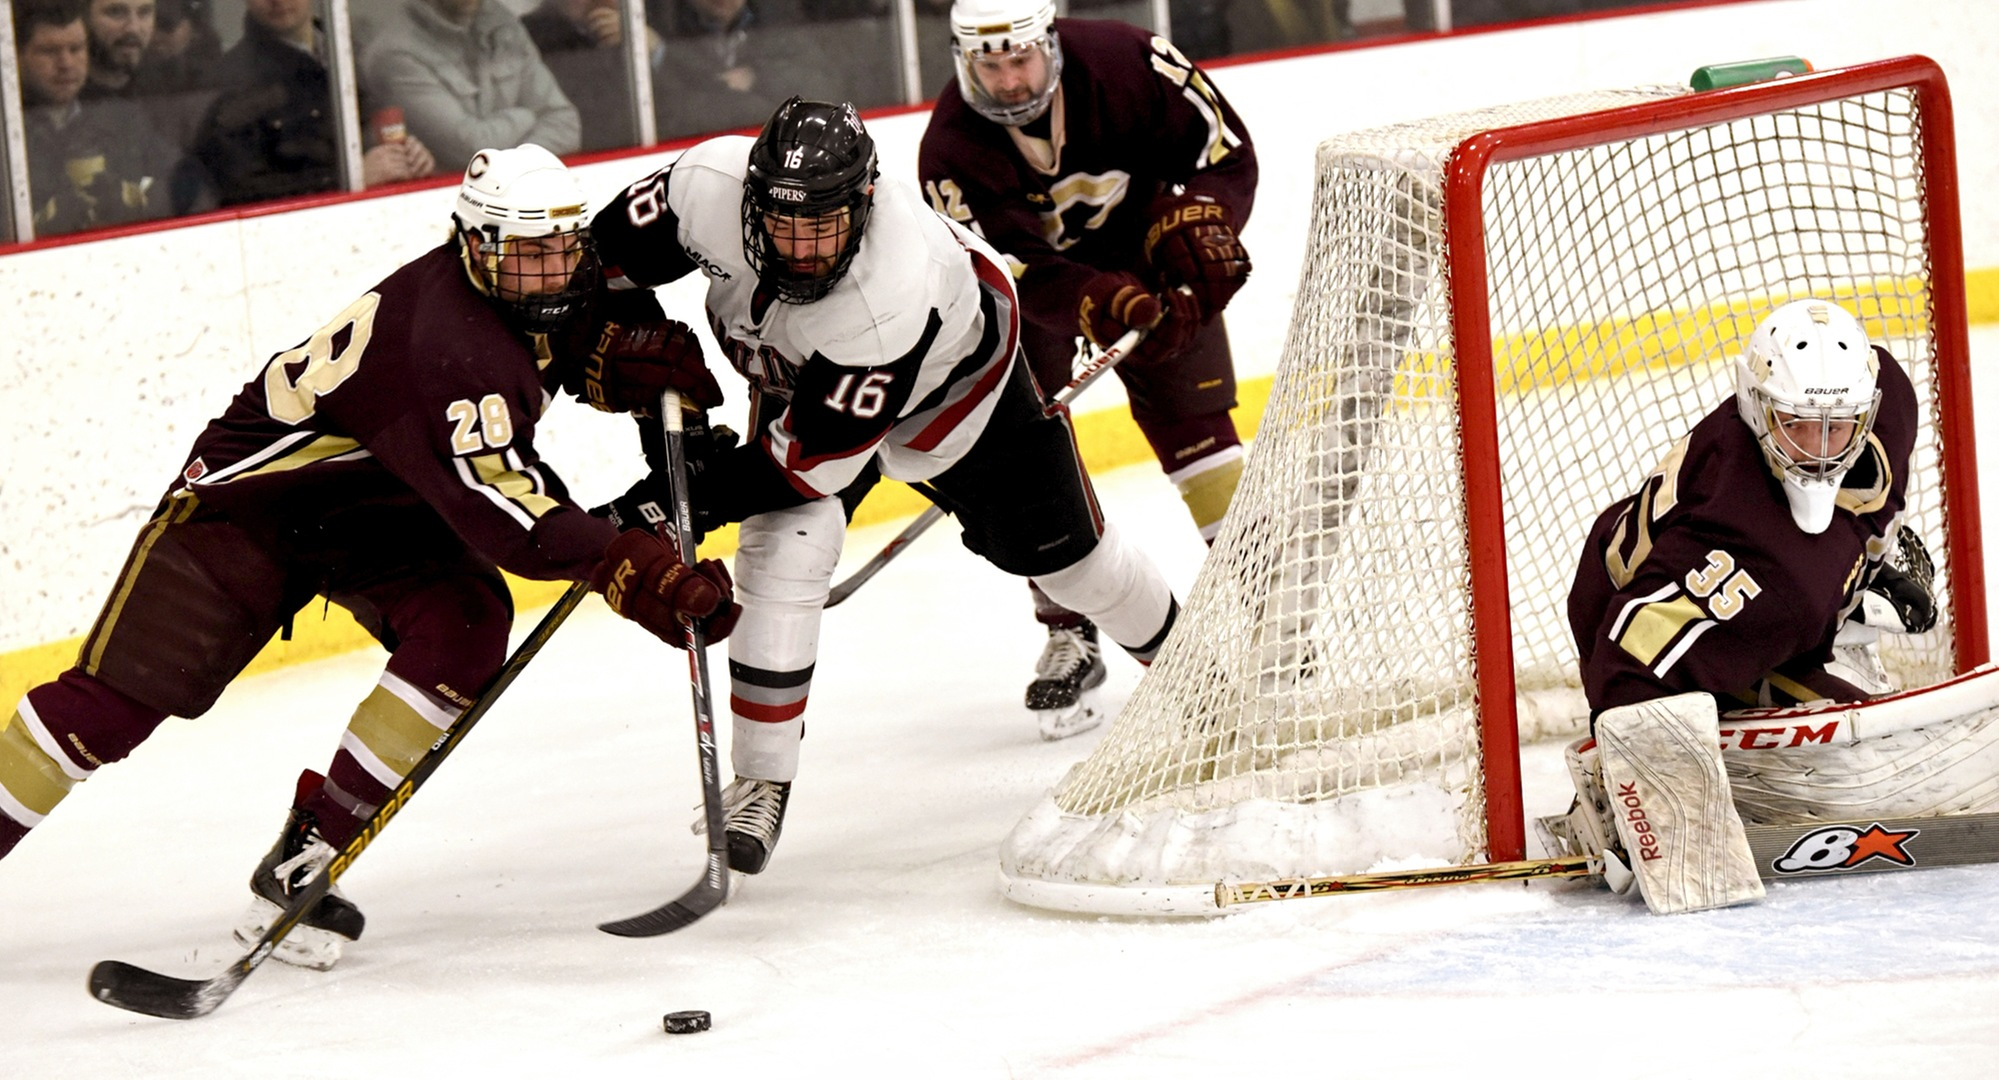 Sophomore defenseman Turk Skatliff tries to control the puck by the Cobber net in Concordia's 3-2 MIAC quarterfinal win at Hamline. (Photo courtesy of Hamline sports information office)